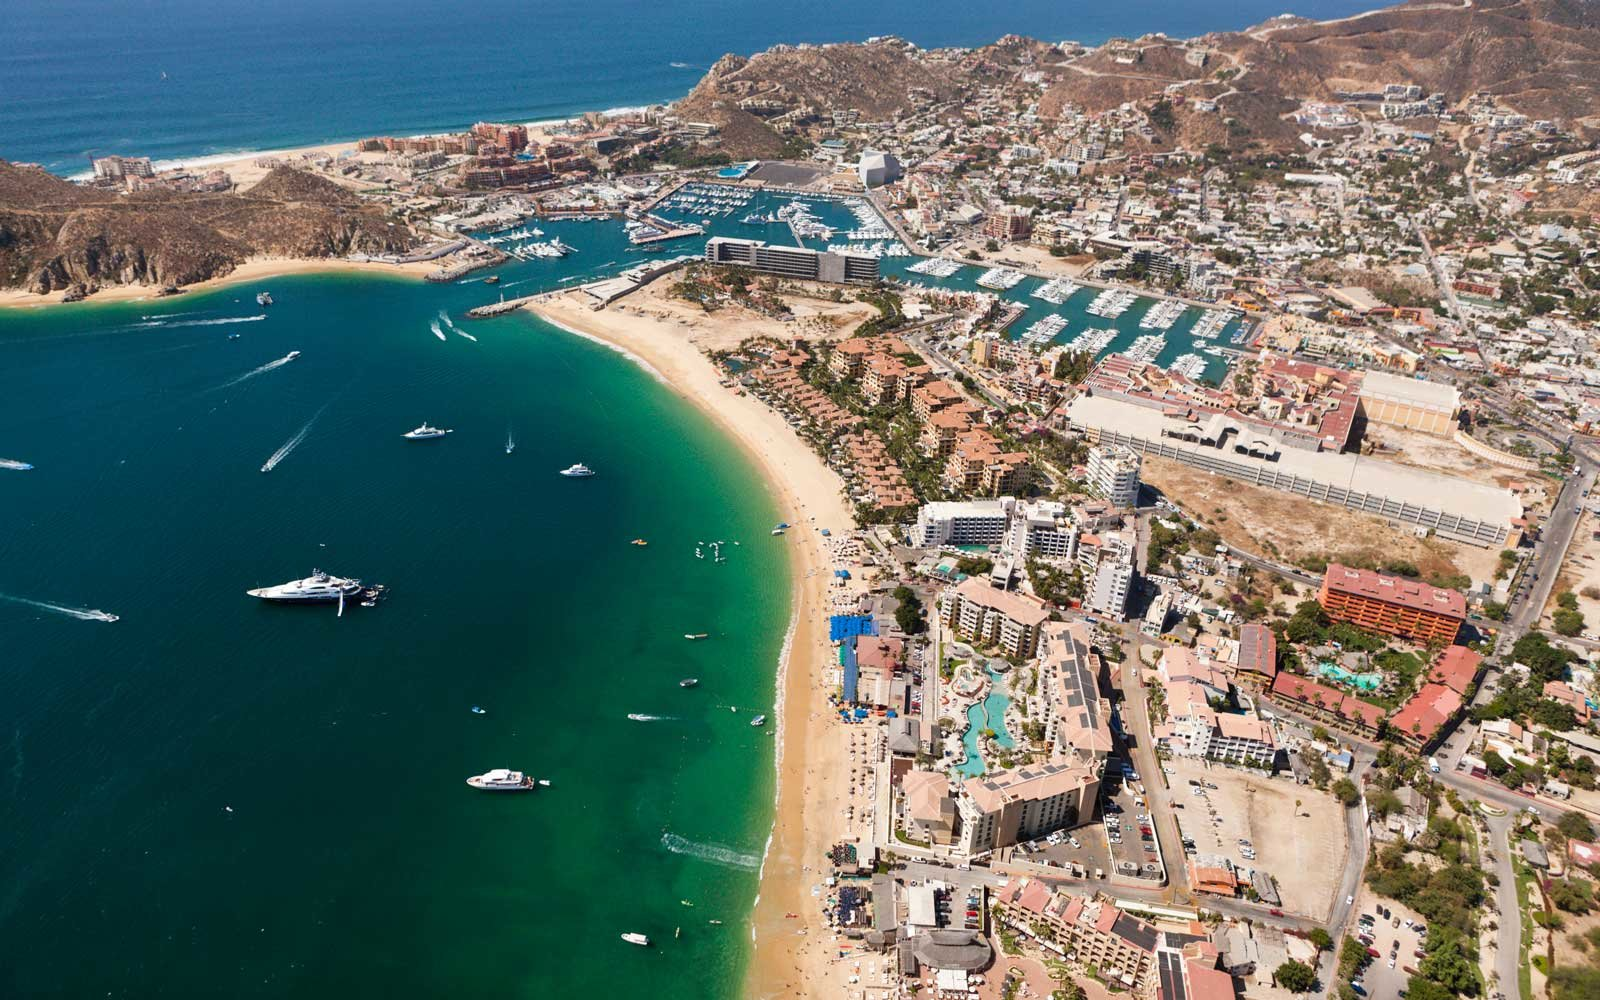 cabo-mexico-harbor-2018WTG1117.jpg